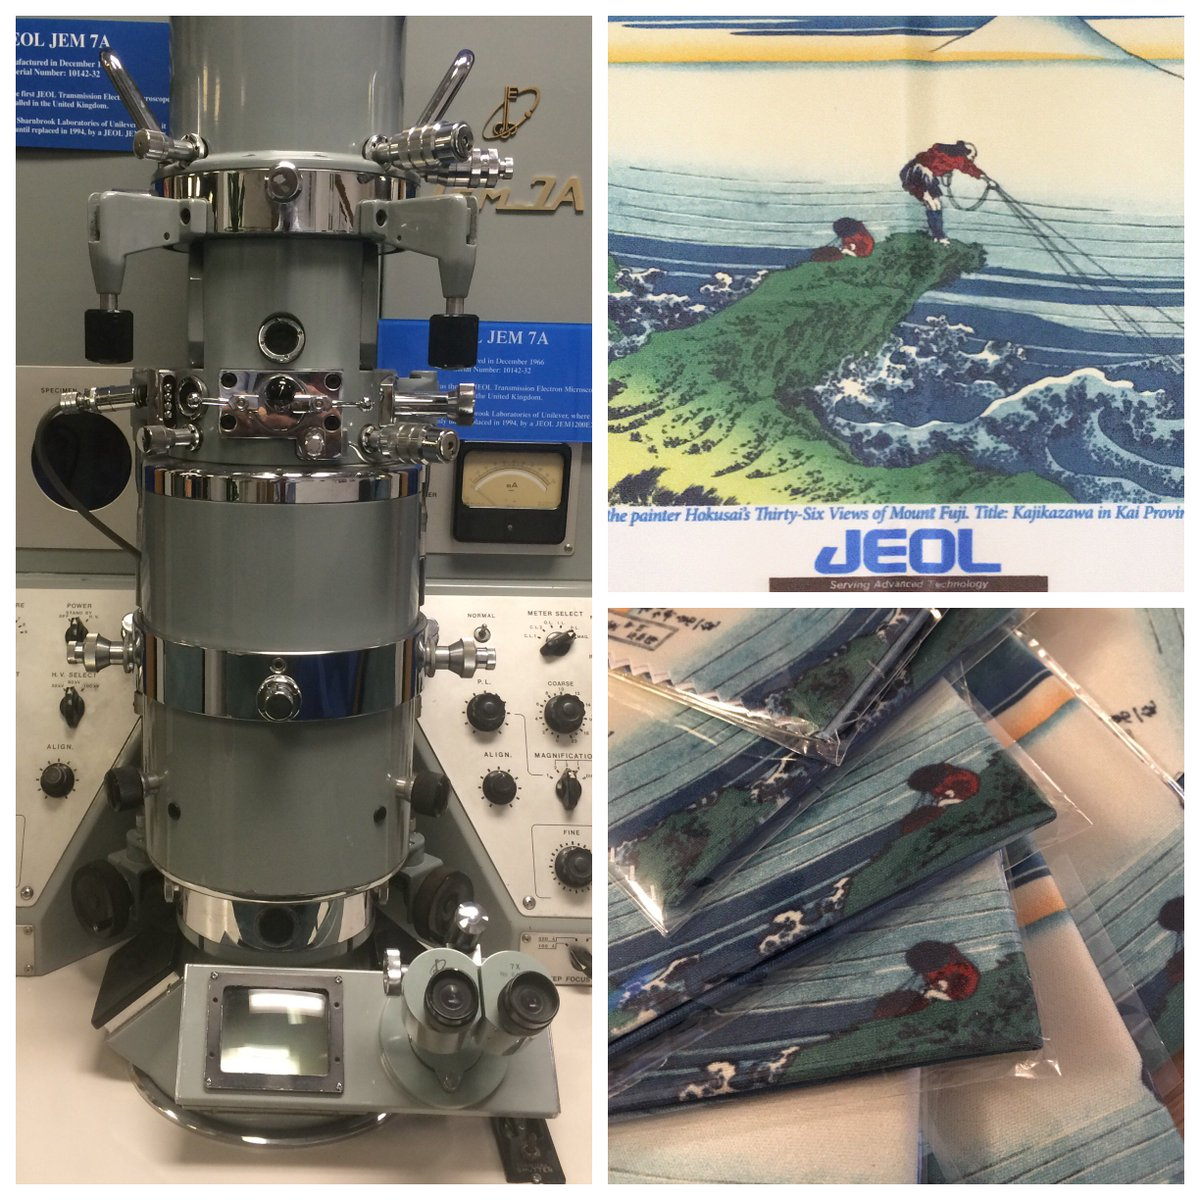 Here&#39;s our #vintage JEOL JEM-7A @JEOLEUROPE UK.  Post photos of your #vintageEM (any type/brand) for a chance to win an exclusive JEOL lens cloth #electronmicroscopy #sciart #science #MicroscopyMonday @JEOLUSA @JEOL_Japan<br>http://pic.twitter.com/bY3ahrjR2r